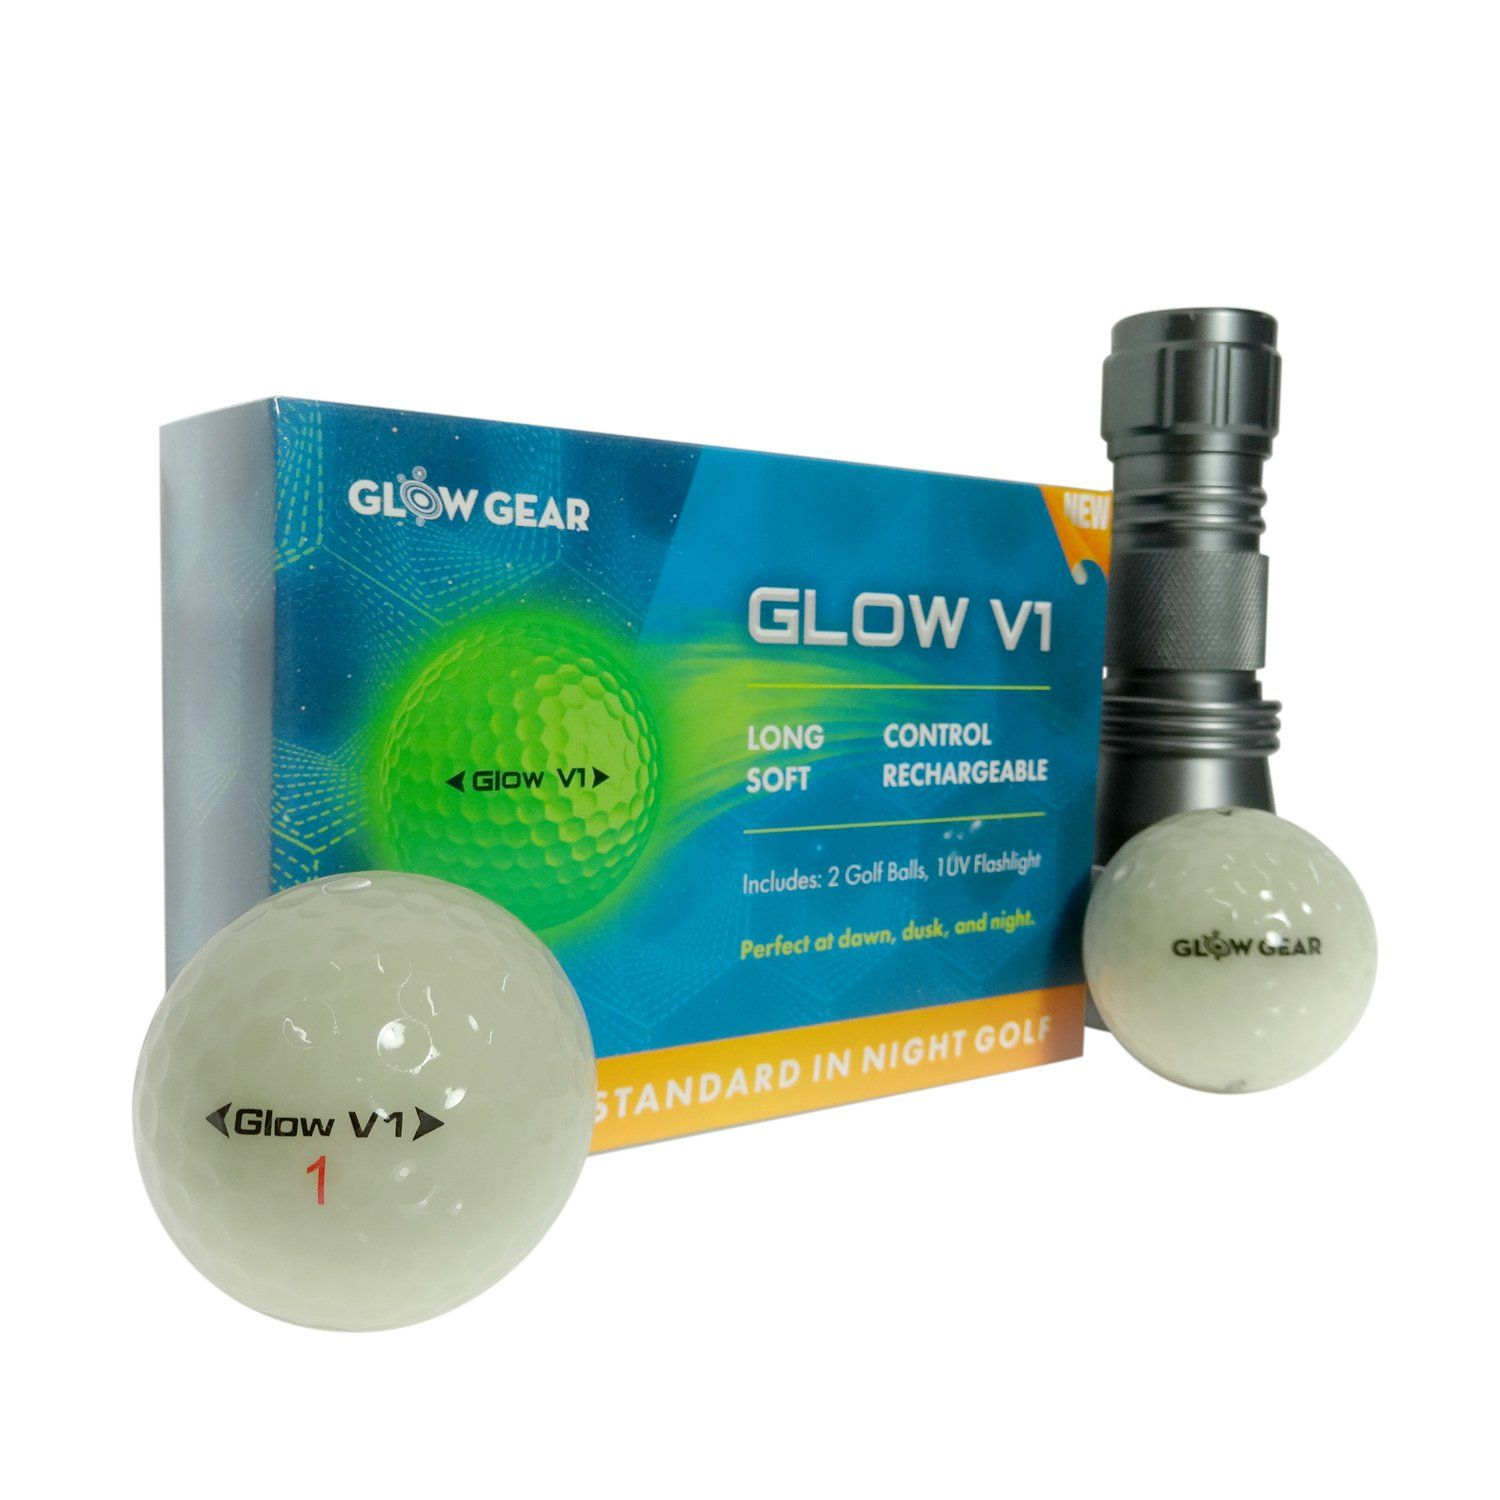 Golf Clubs Glowv2 Night Golf Balls 2pack Best Hitting Ultra Bright Glow Golf Ball Compression Core And Urethane Skin Incl Golf Gifts Golf Clubs Glow Gear